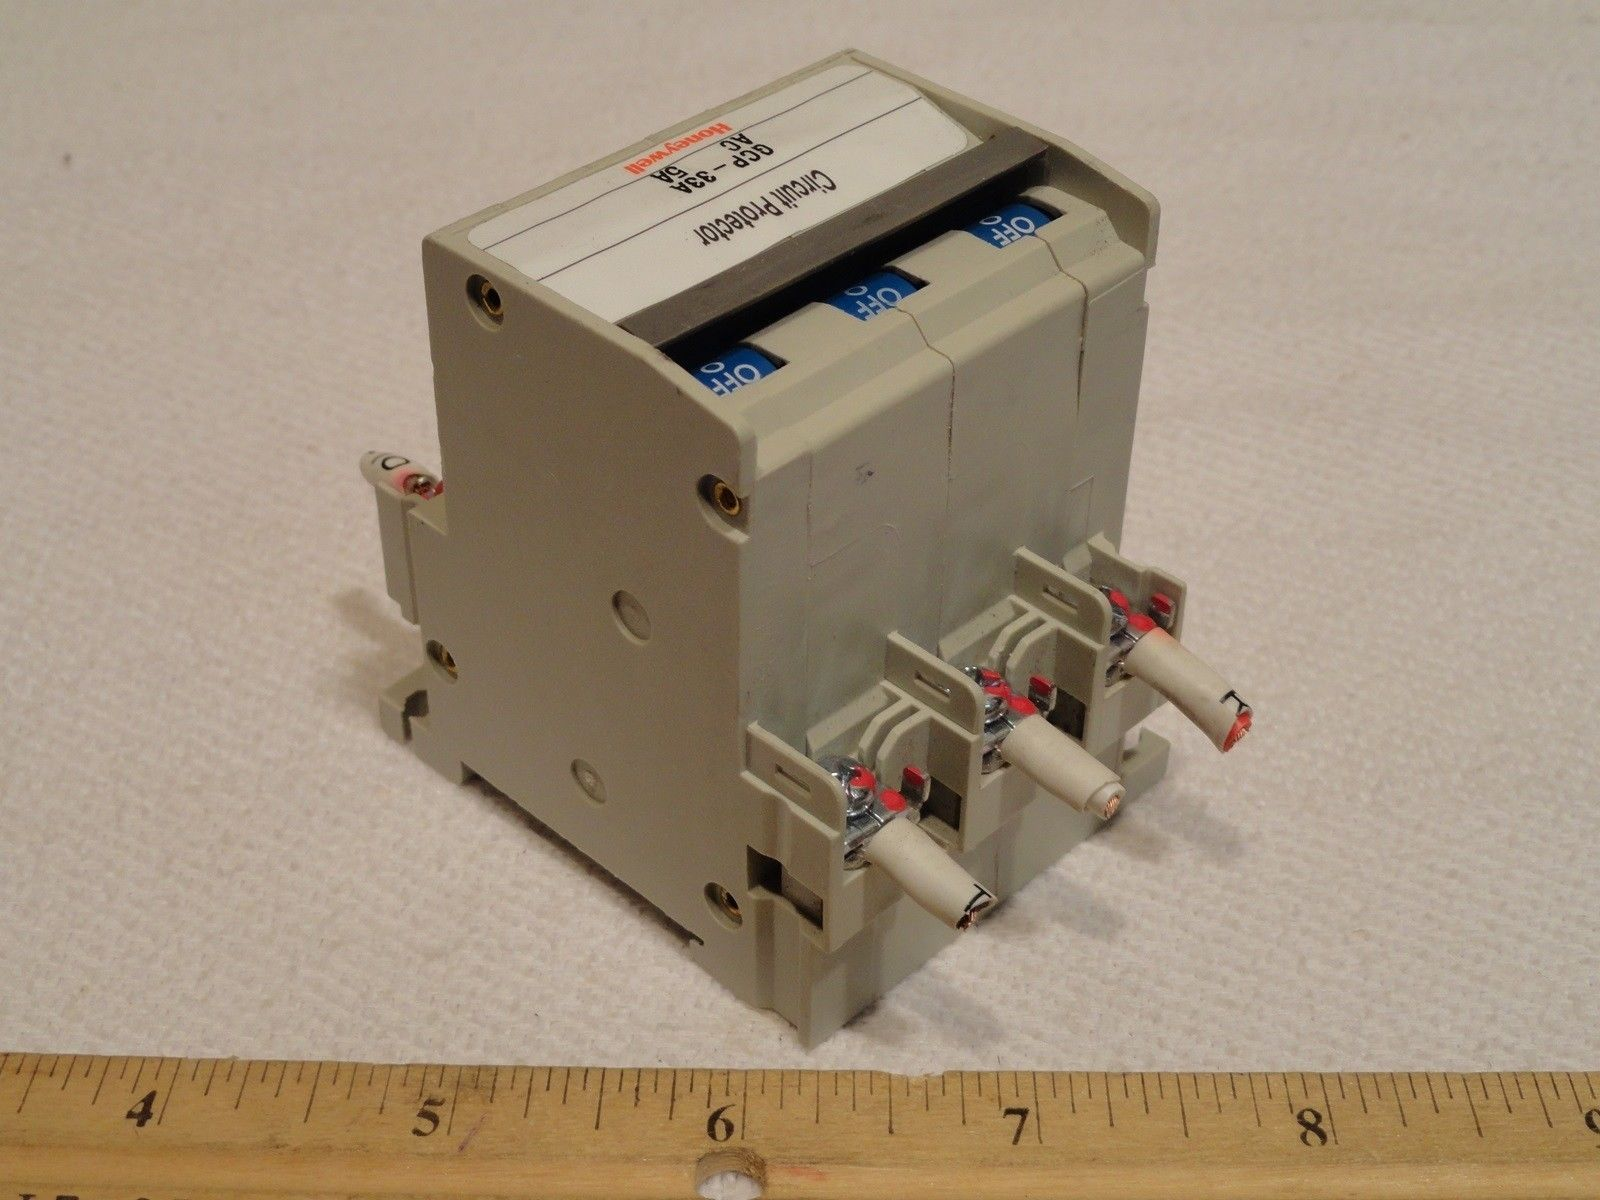 Honeywell 5a Gcp 33a Circuit Protector Fuse And 50 Similar Items Details About Siemens 5sx21 C5 230 400v 5 Amp Breaker 3 Pole Jk02001 7005 220vac